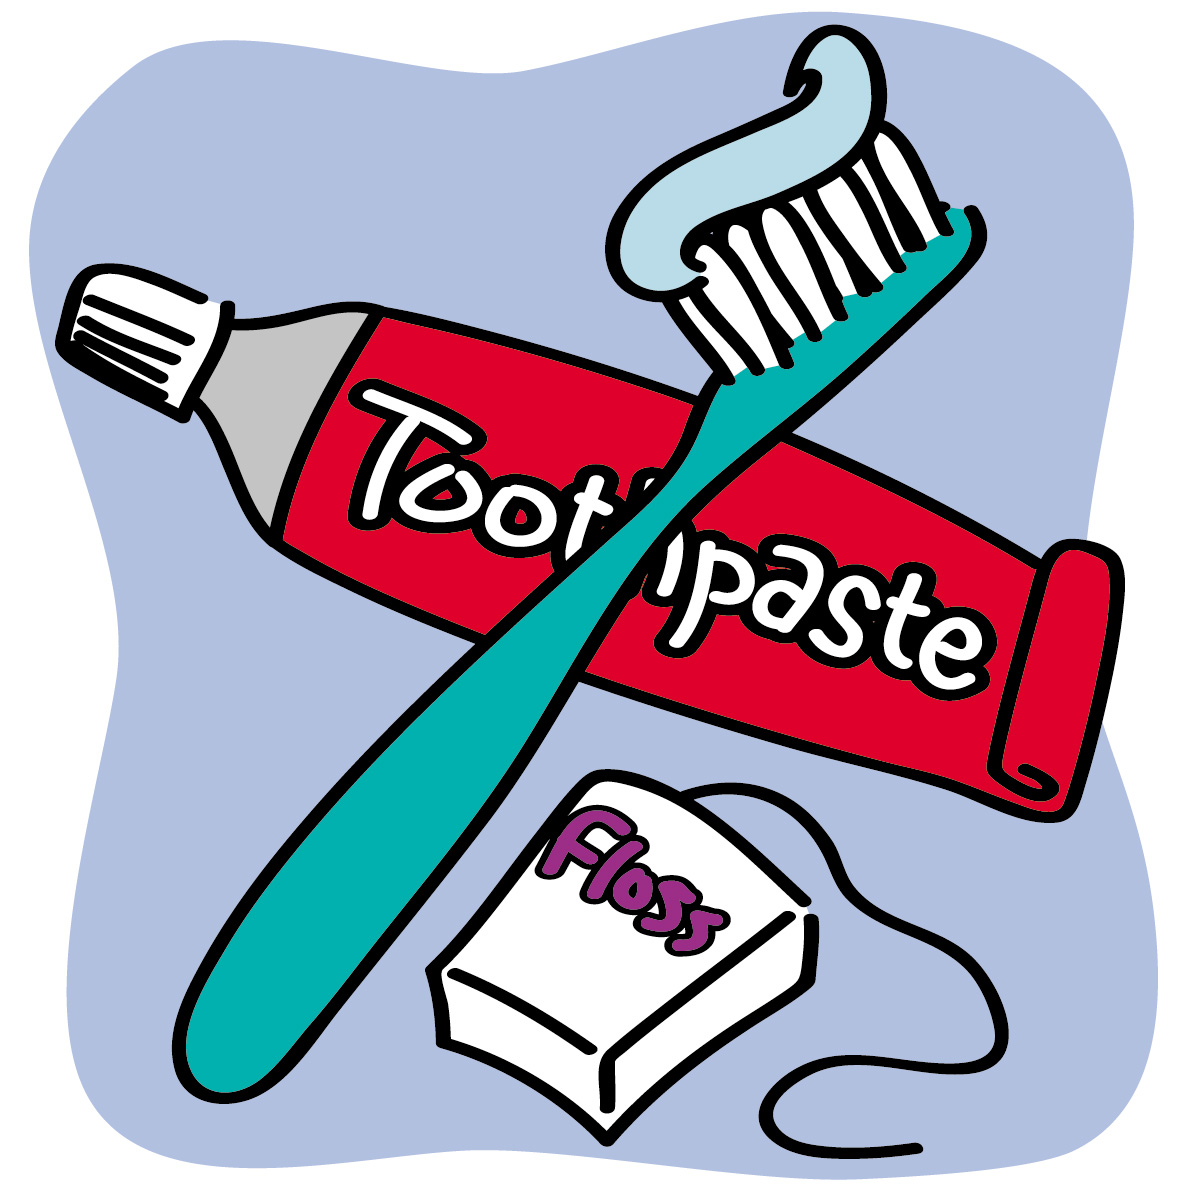 Dental Hygienist Clip Art - Cliparts.co